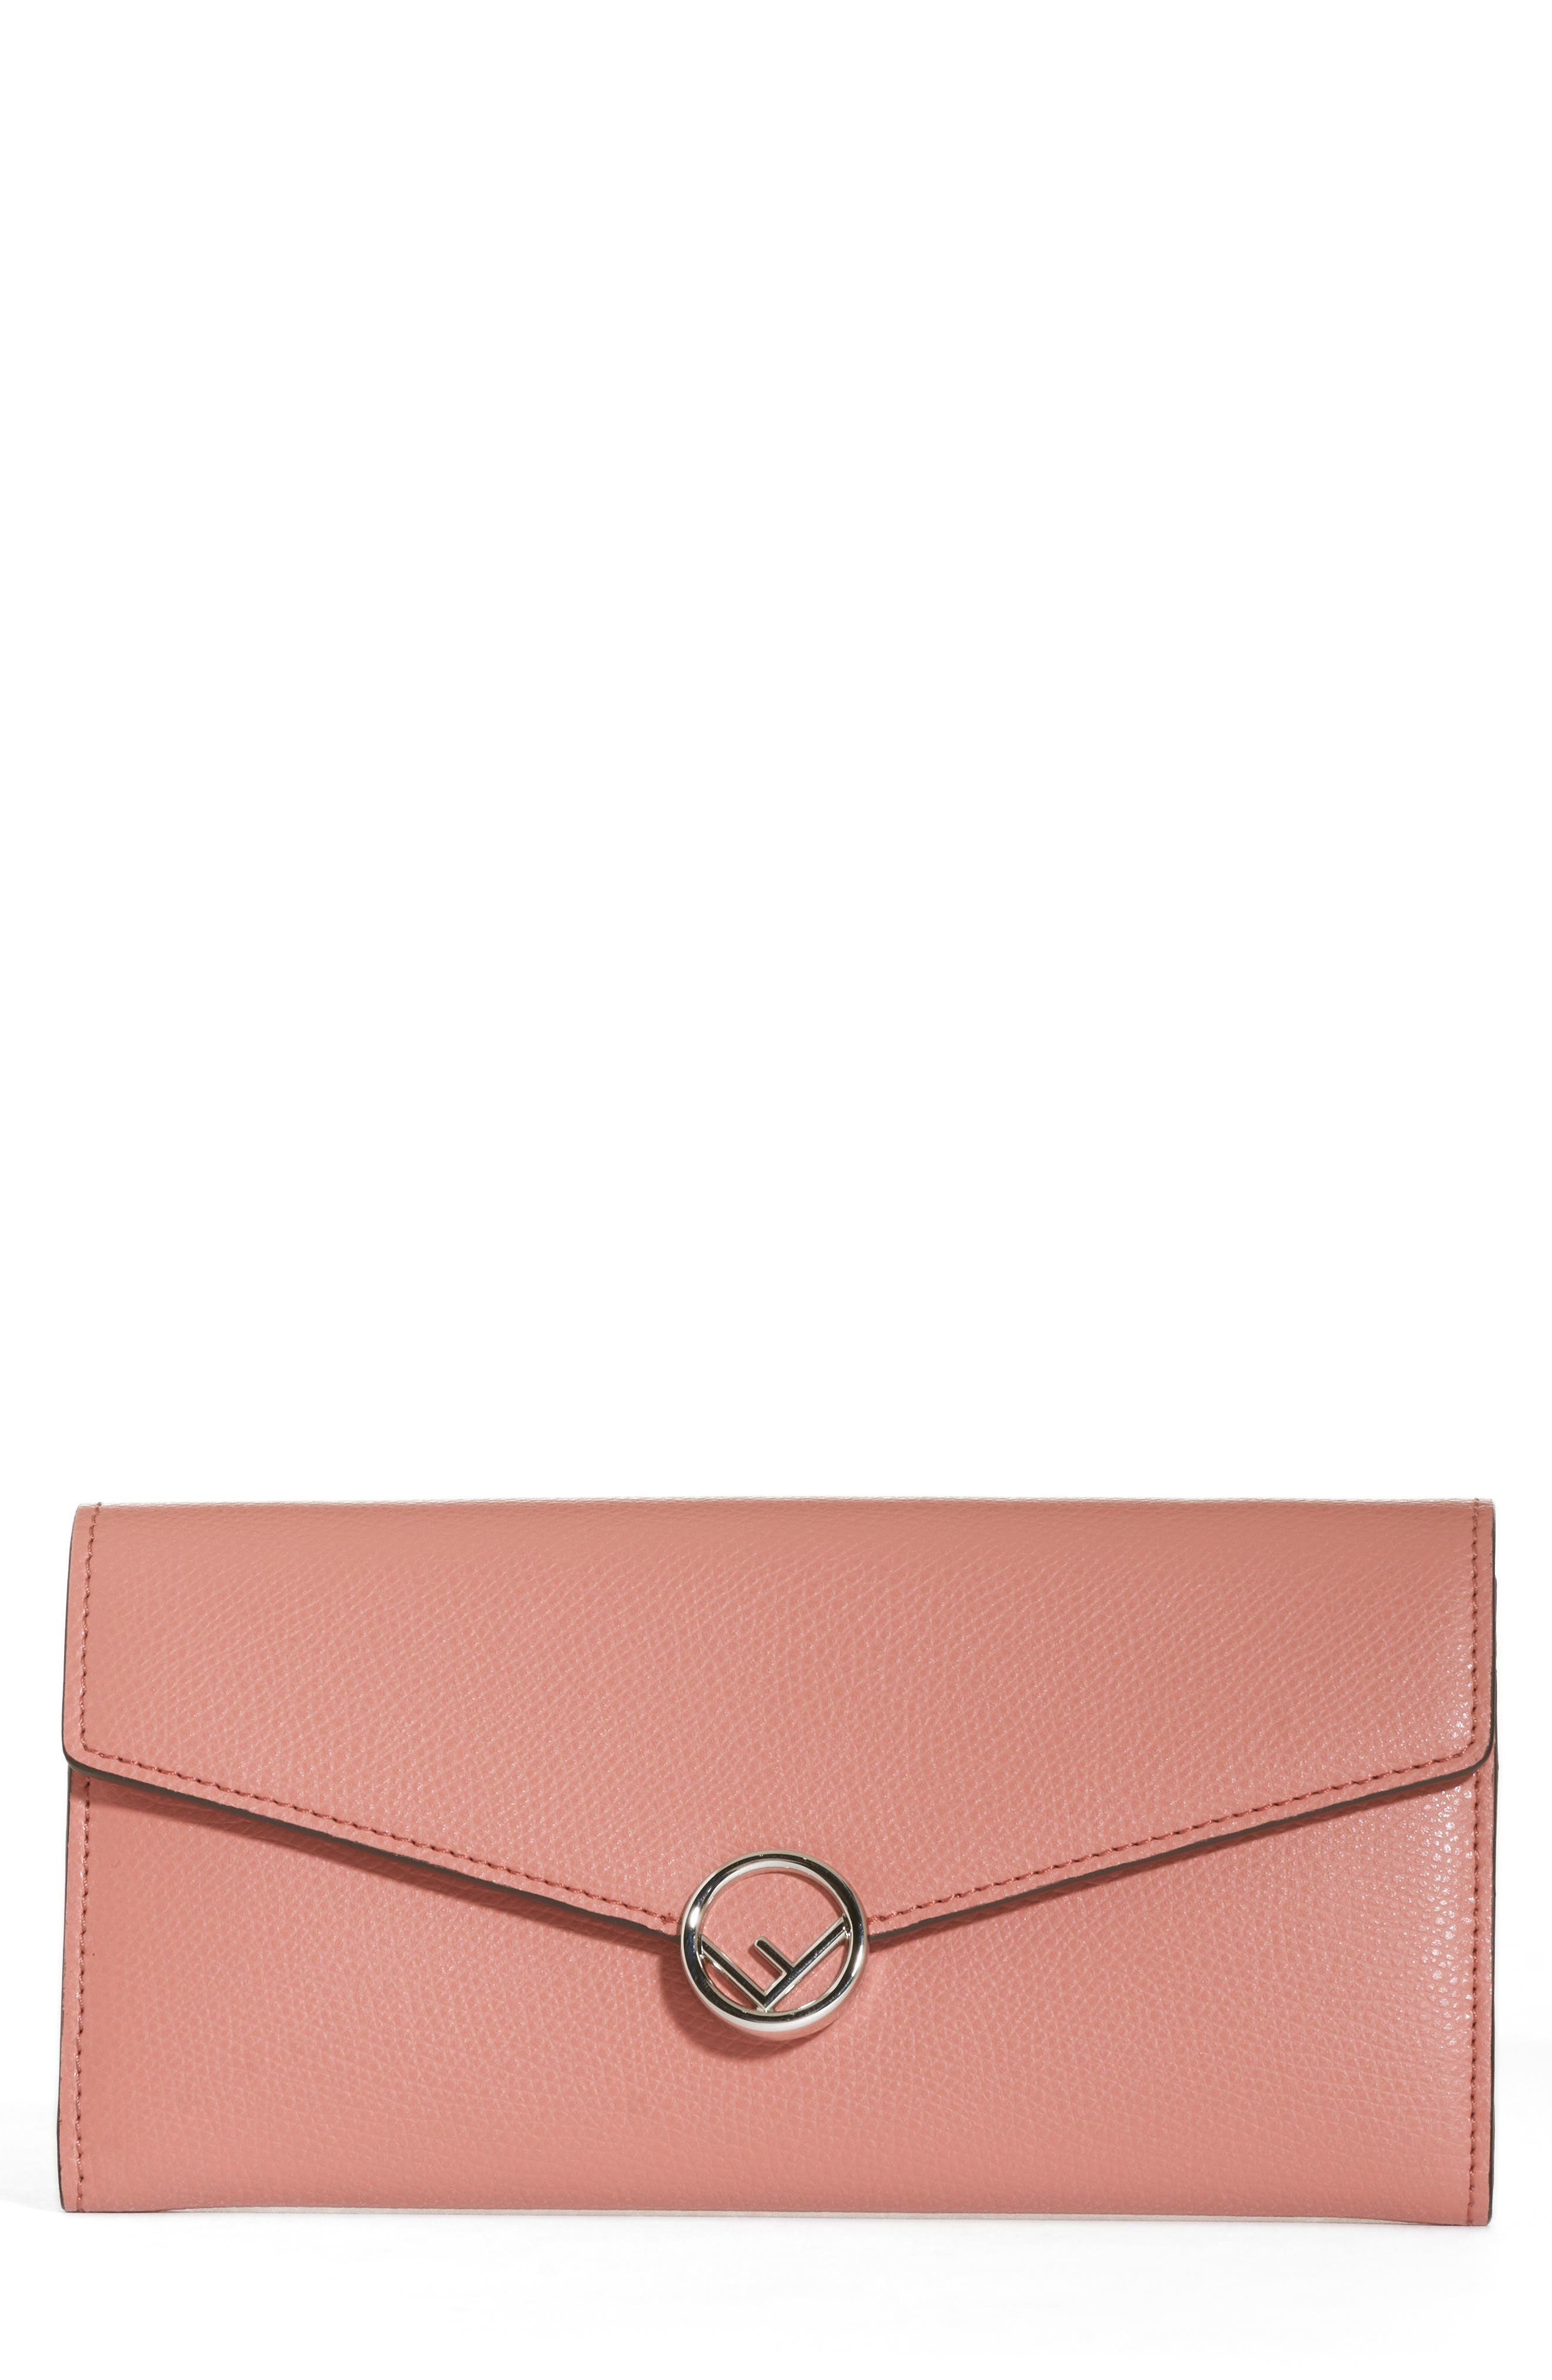 FENDI Logo Calfskin Leather Continental Wallet on a Chain, Main, color, MACARON/ PALLADIO